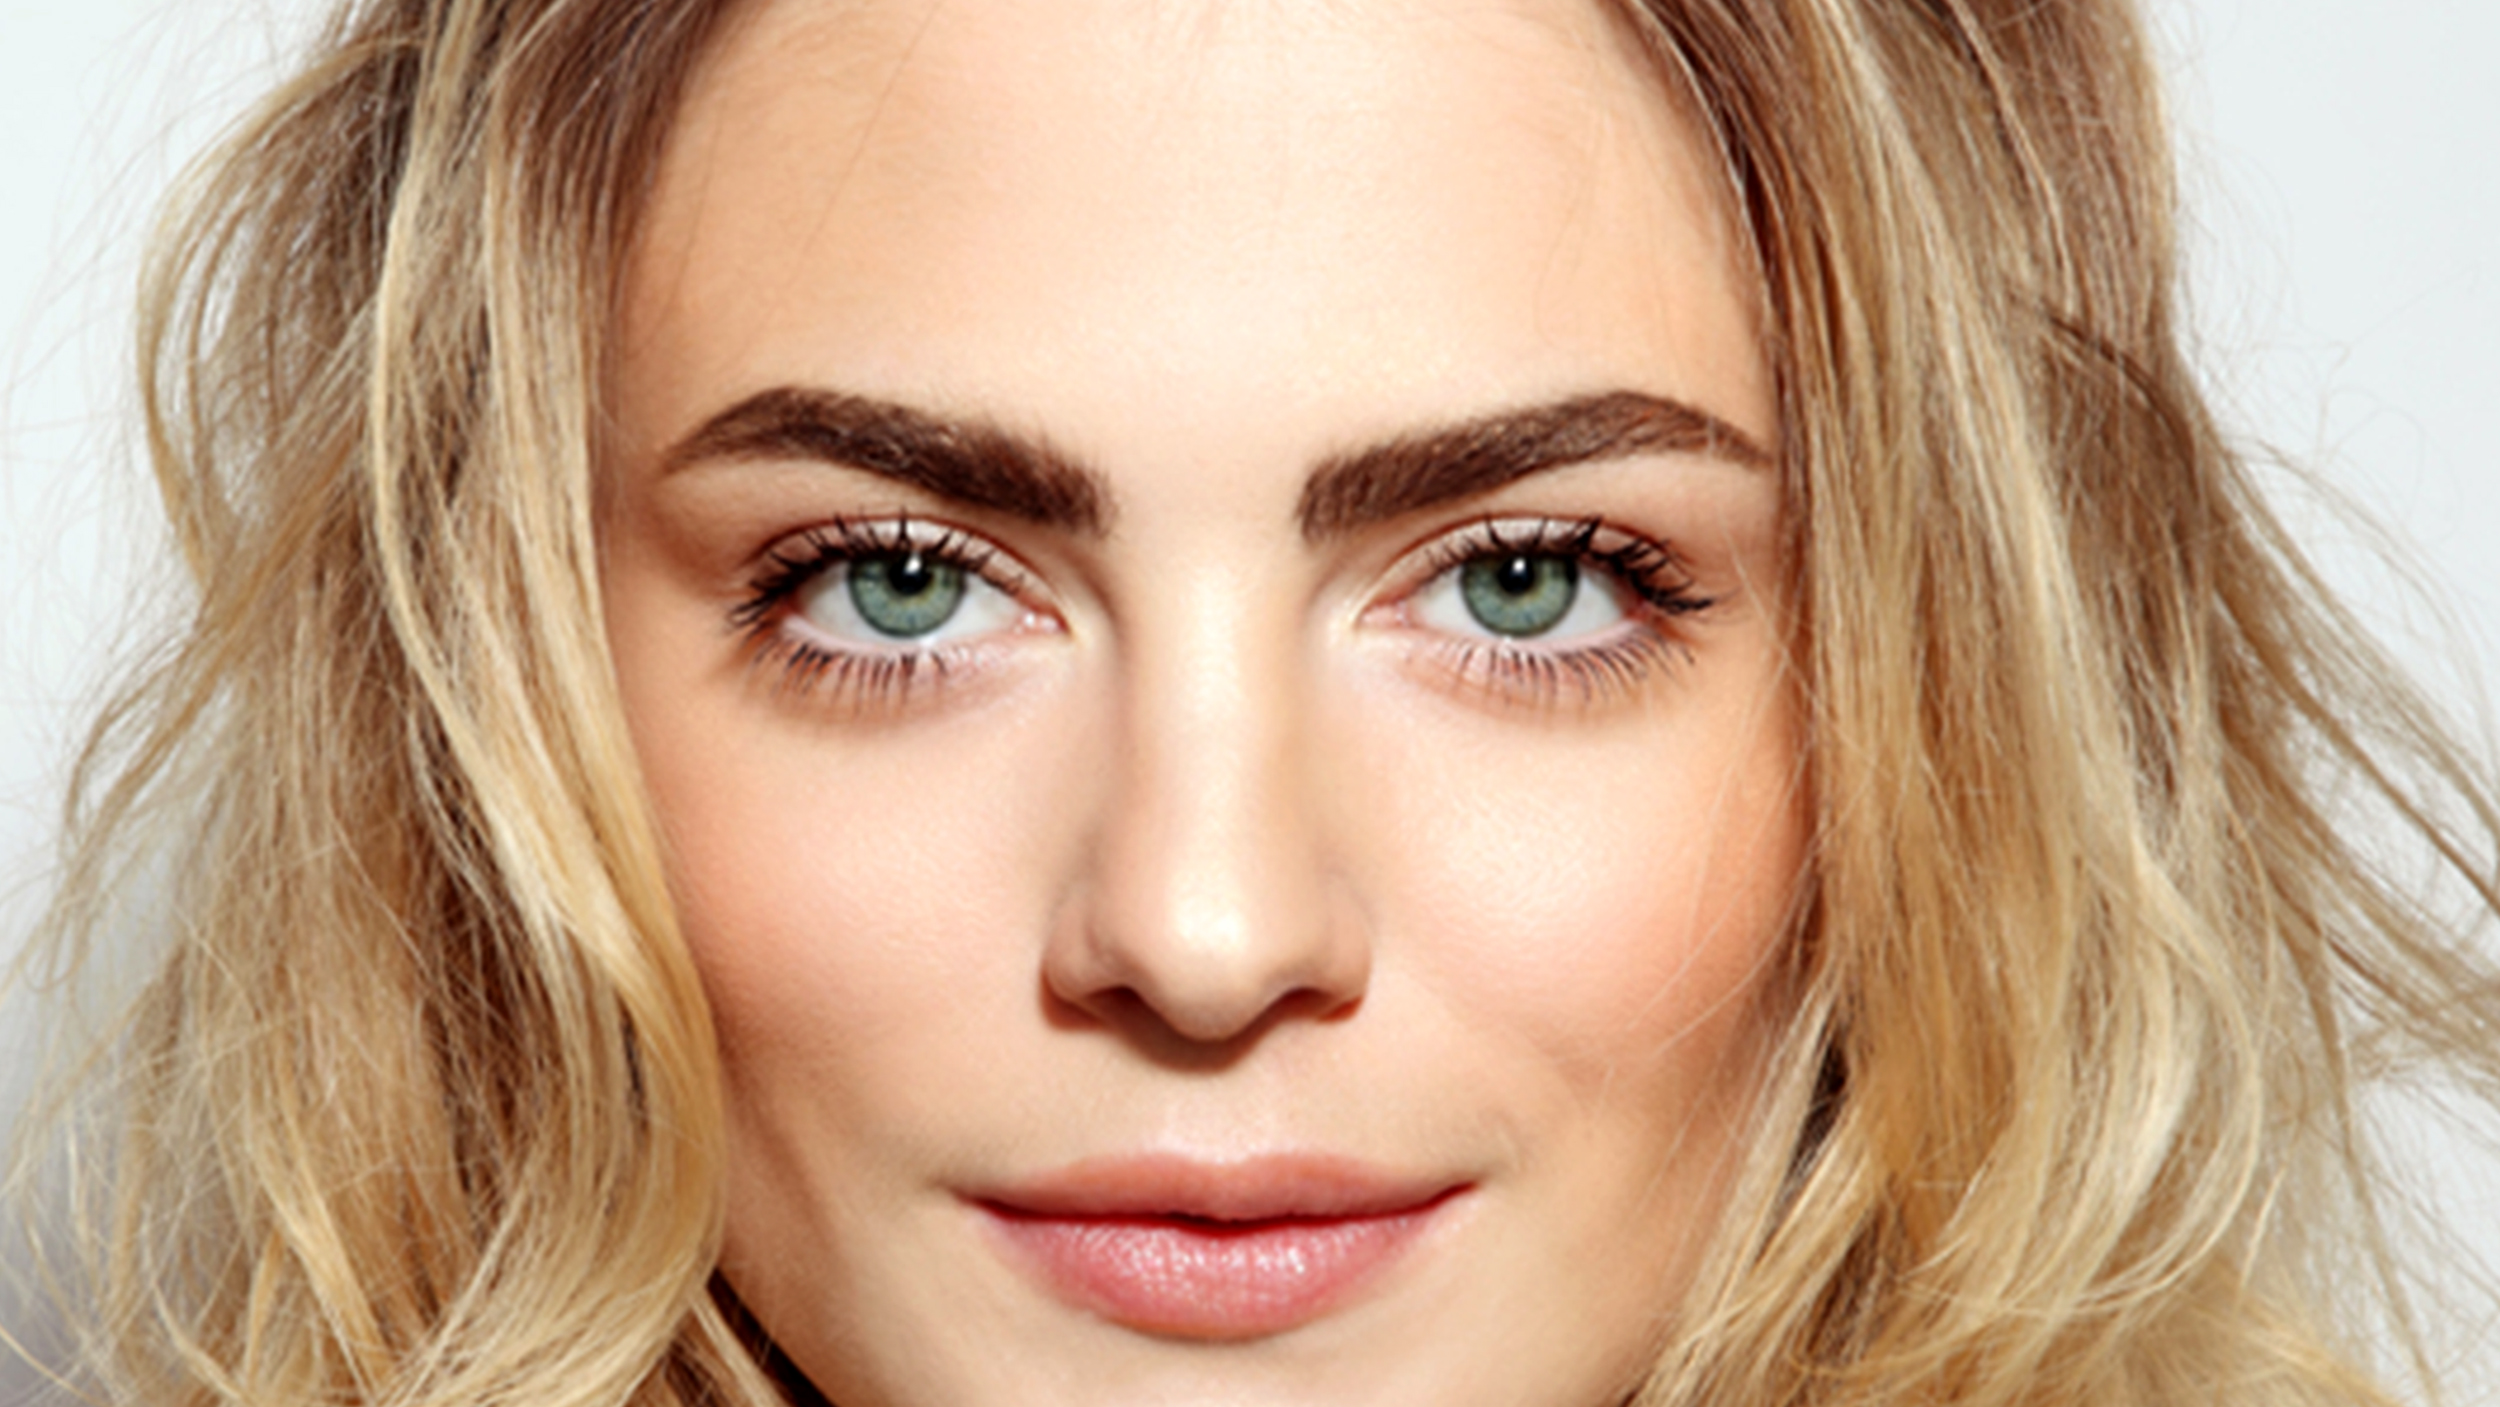 What is microblading? What to know about the eyebrow tattoo trend